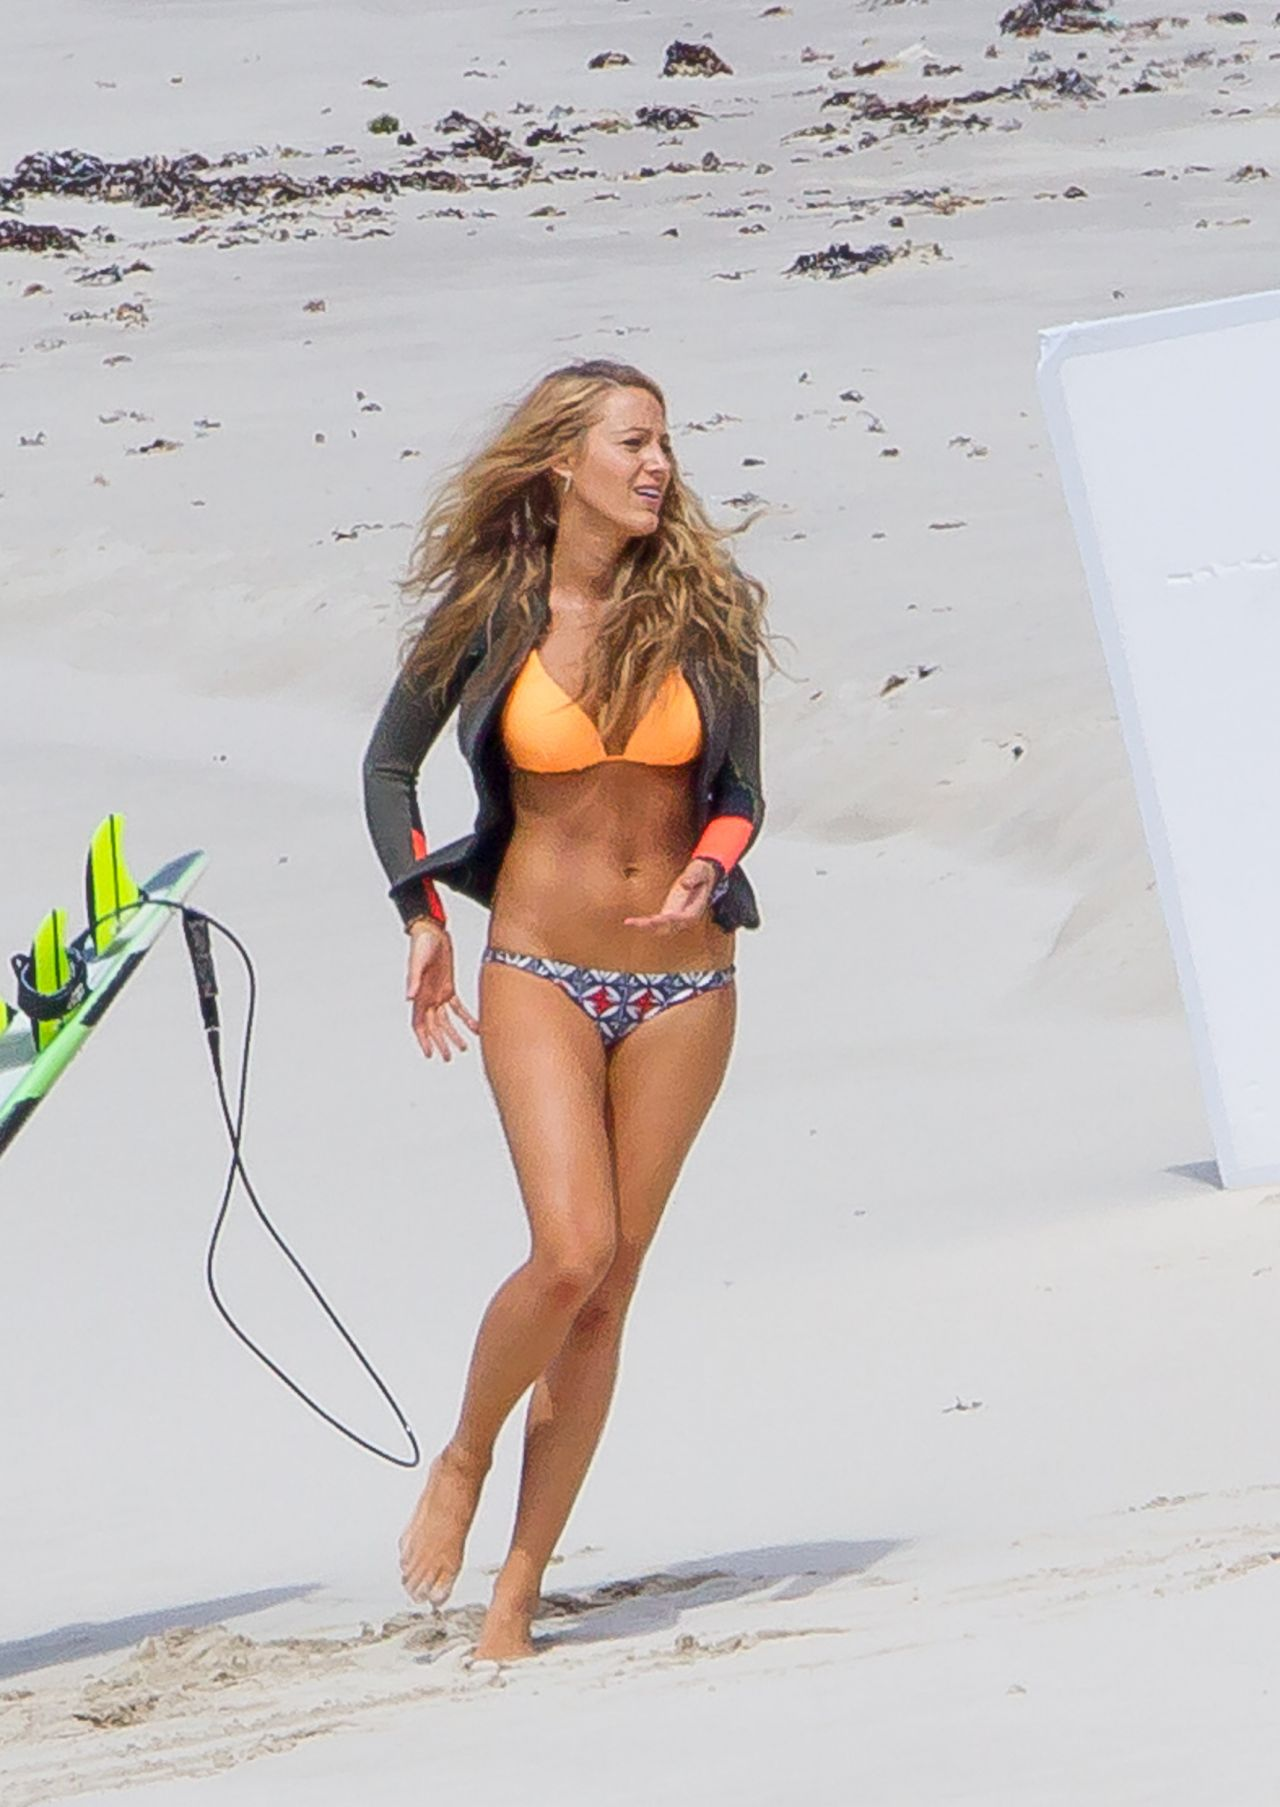 Bikini Blake Lively nudes (55 foto and video), Topless, Is a cute, Instagram, cleavage 2020